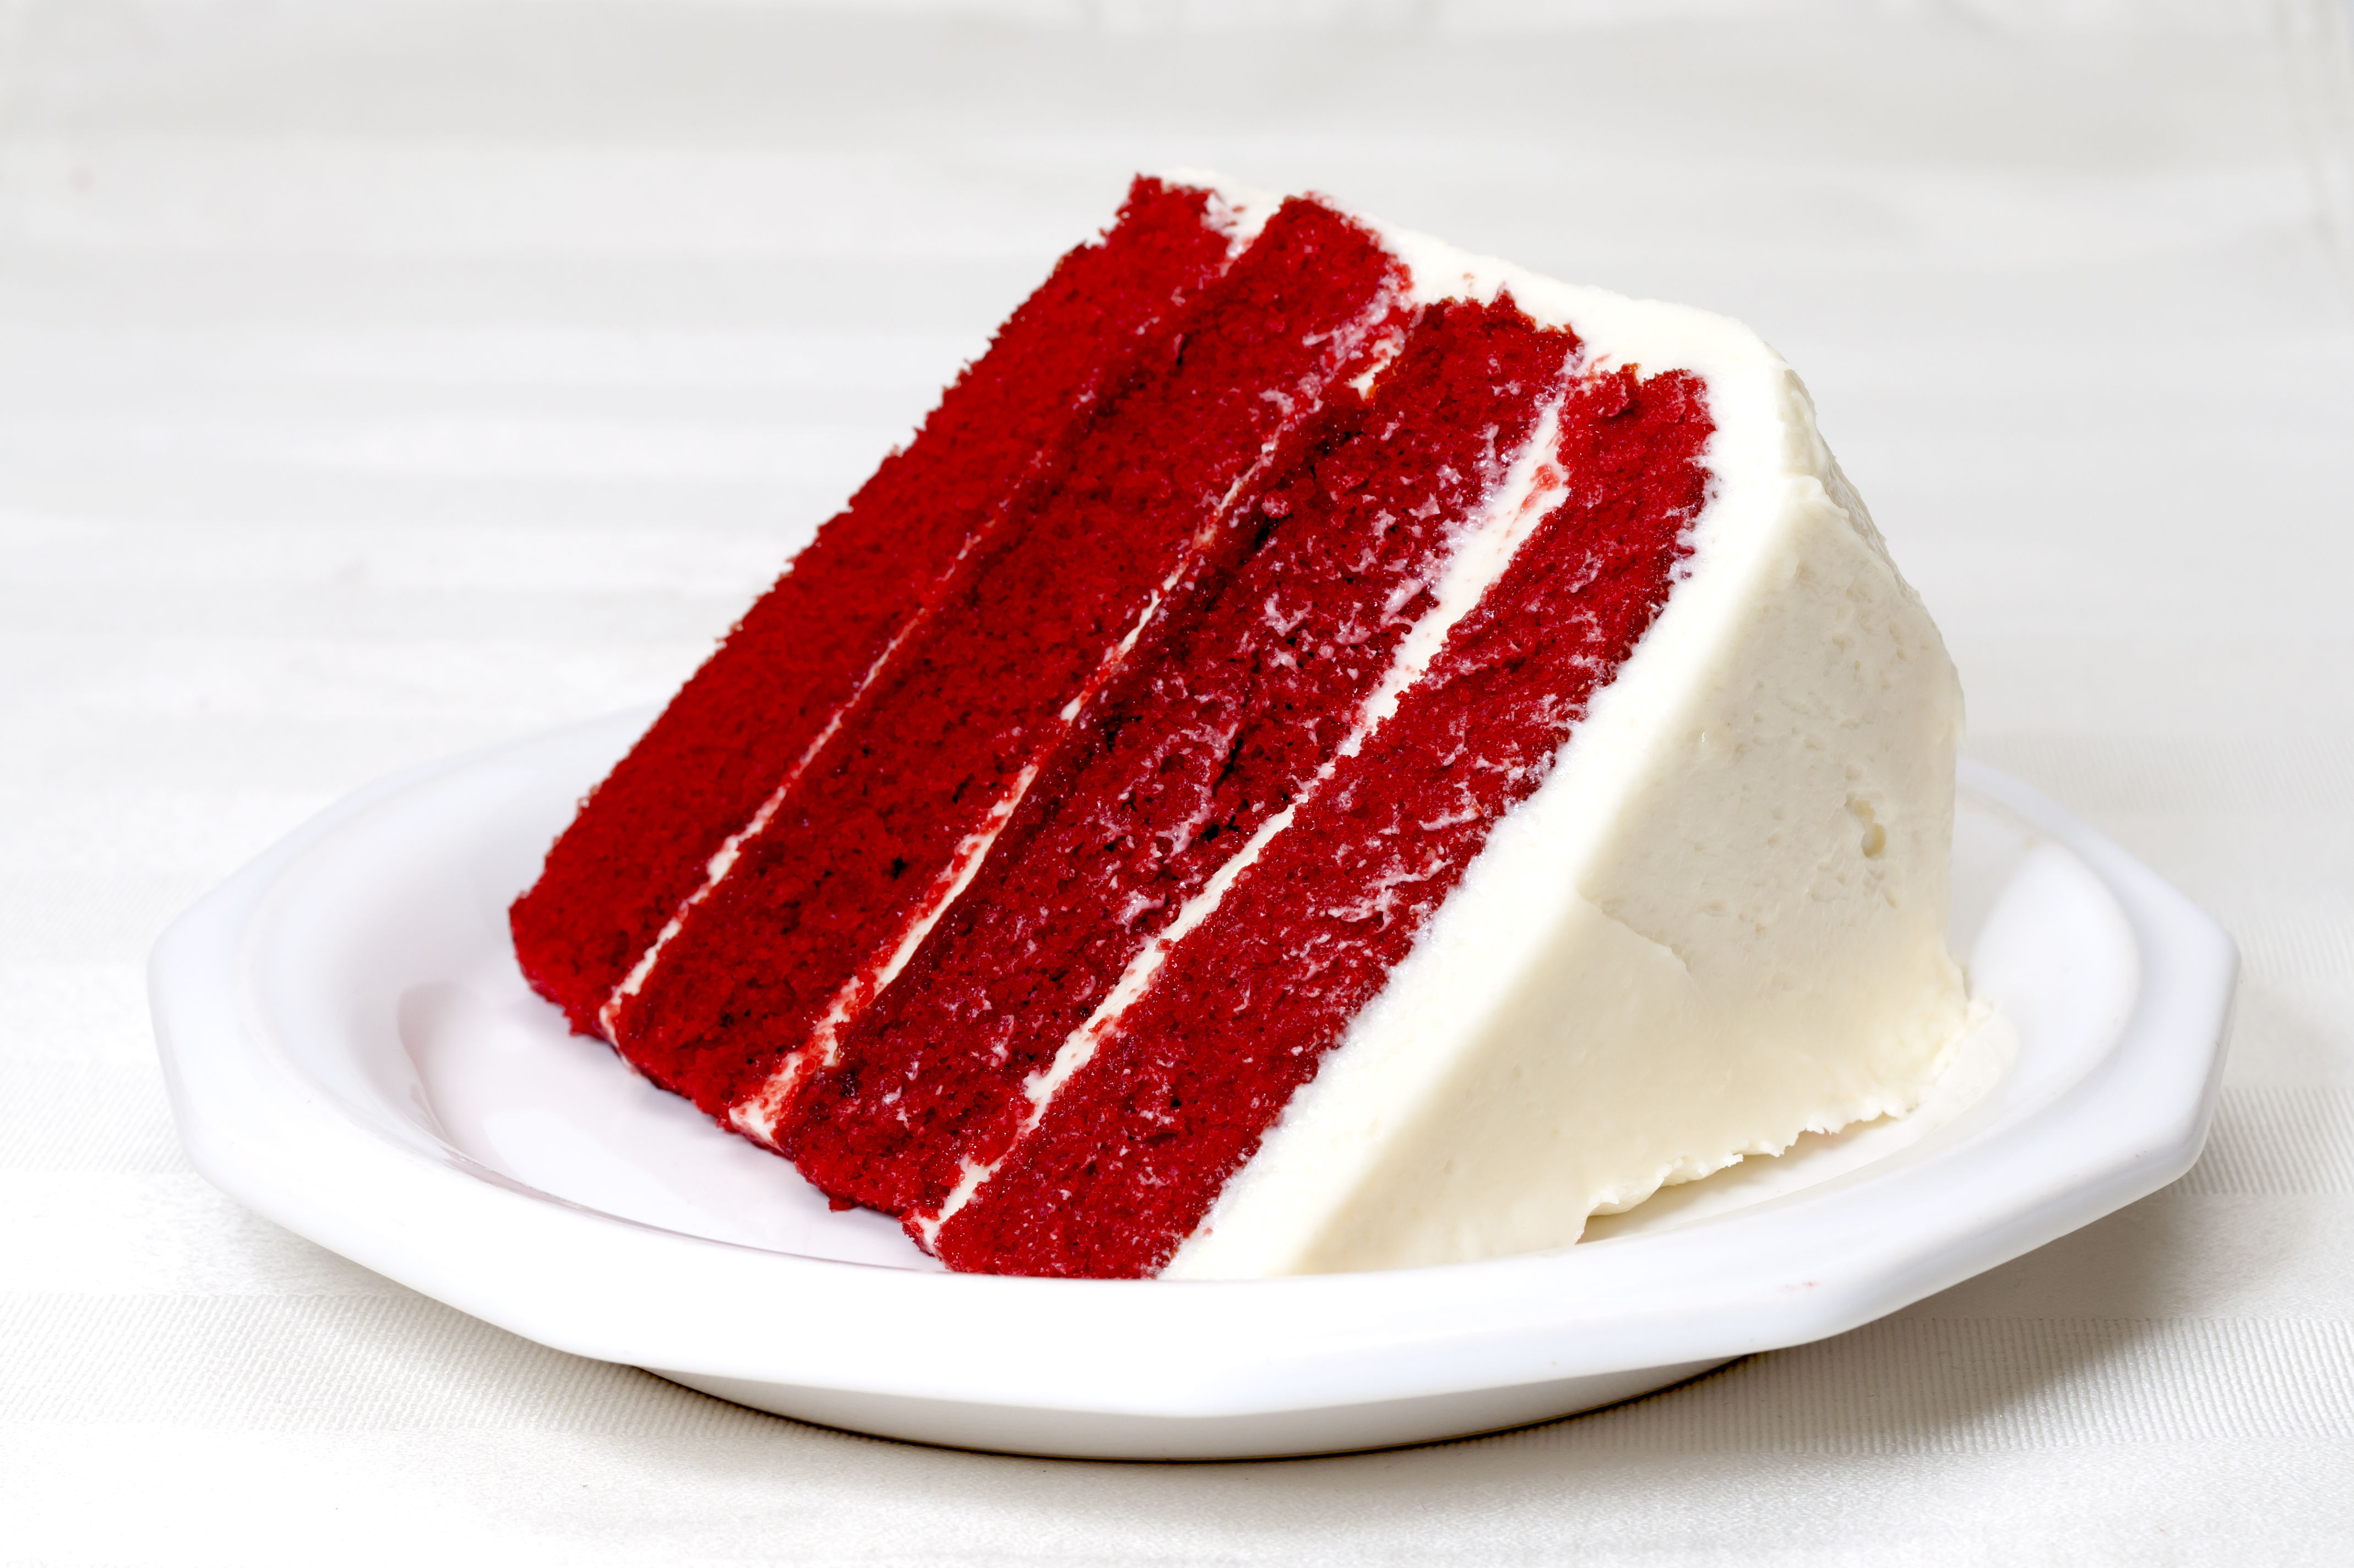 Did a New York City Hotel Really Create Red Velvet Cake?